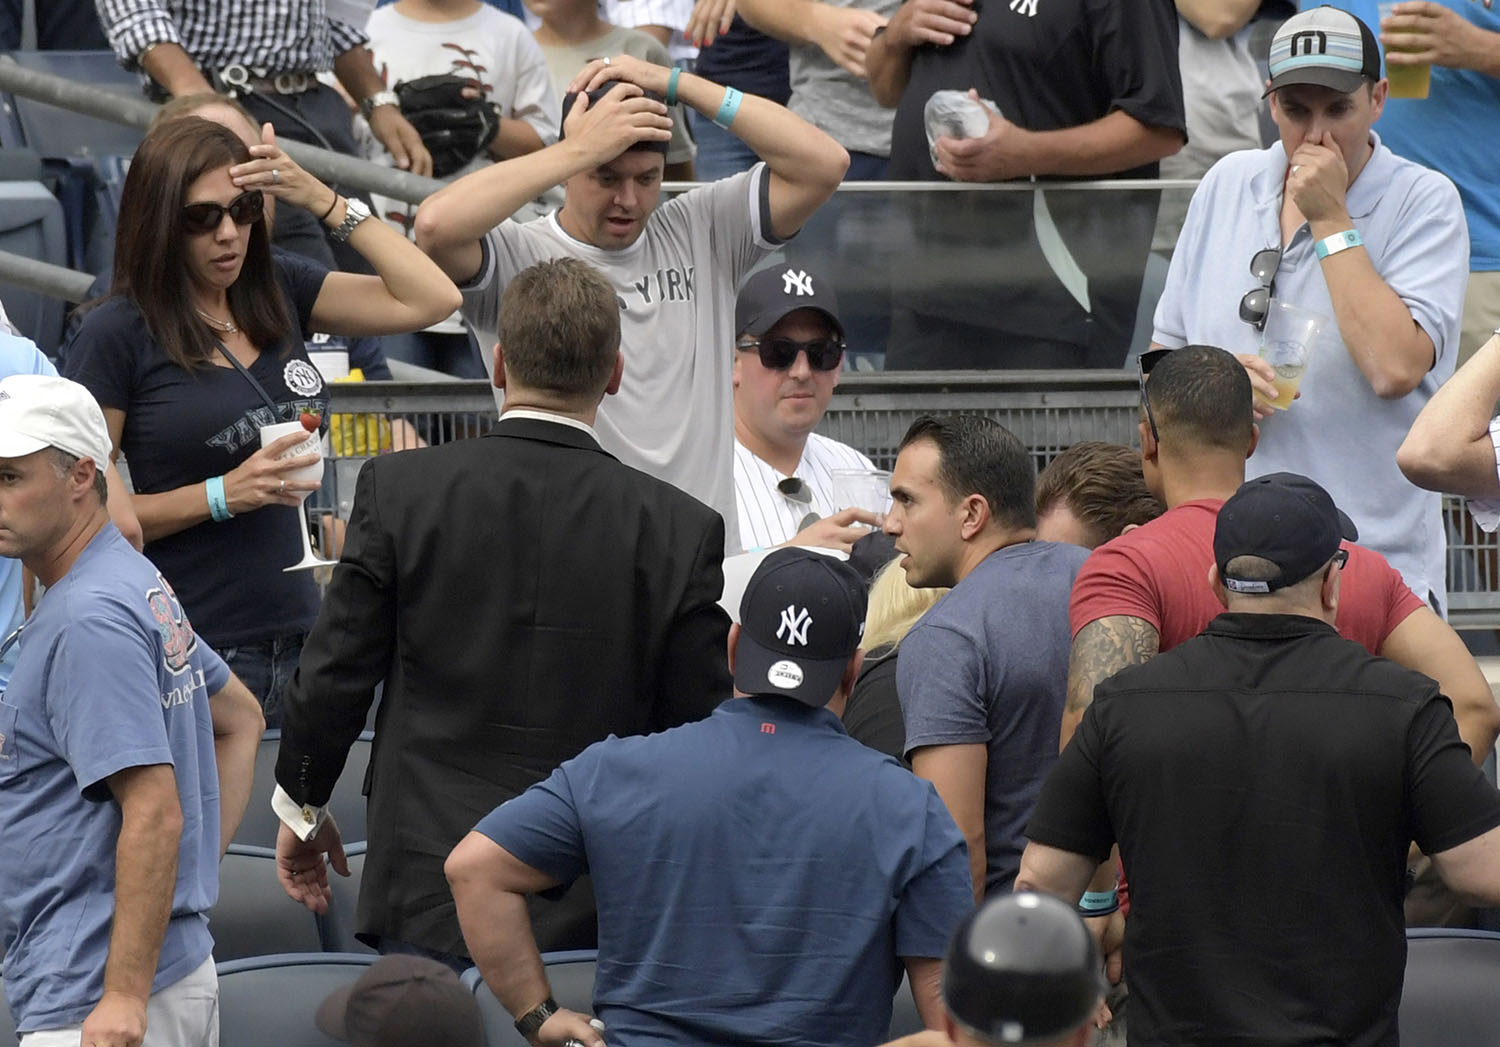 <div class='meta'><div class='origin-logo' data-origin='AP'></div><span class='caption-text' data-credit='AP Photo/Bill Kostroun'>Baseball fans react as a young girl is carried out of the seating area after being hit by a line drive during the fifth inning of a baseball game between the Yankees and Twins.</span></div>